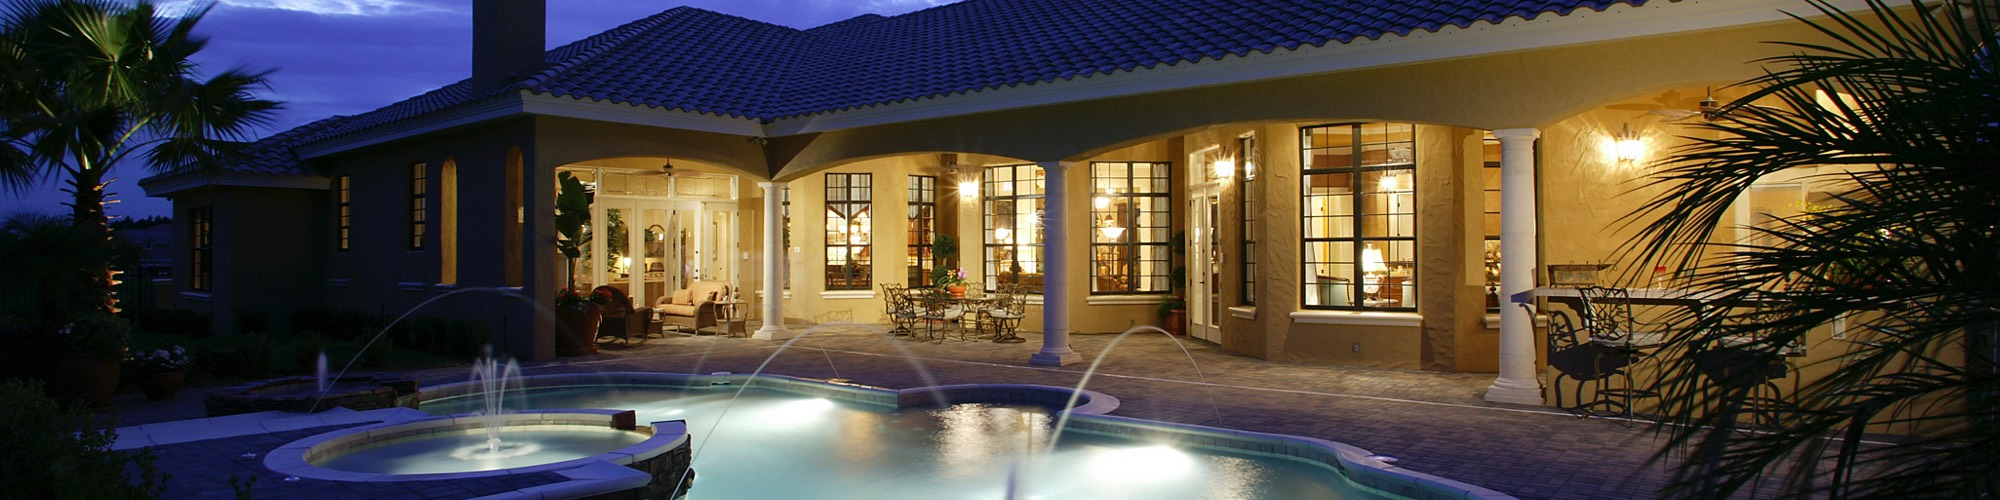 View of pool, spa, and rear of home lit up at night